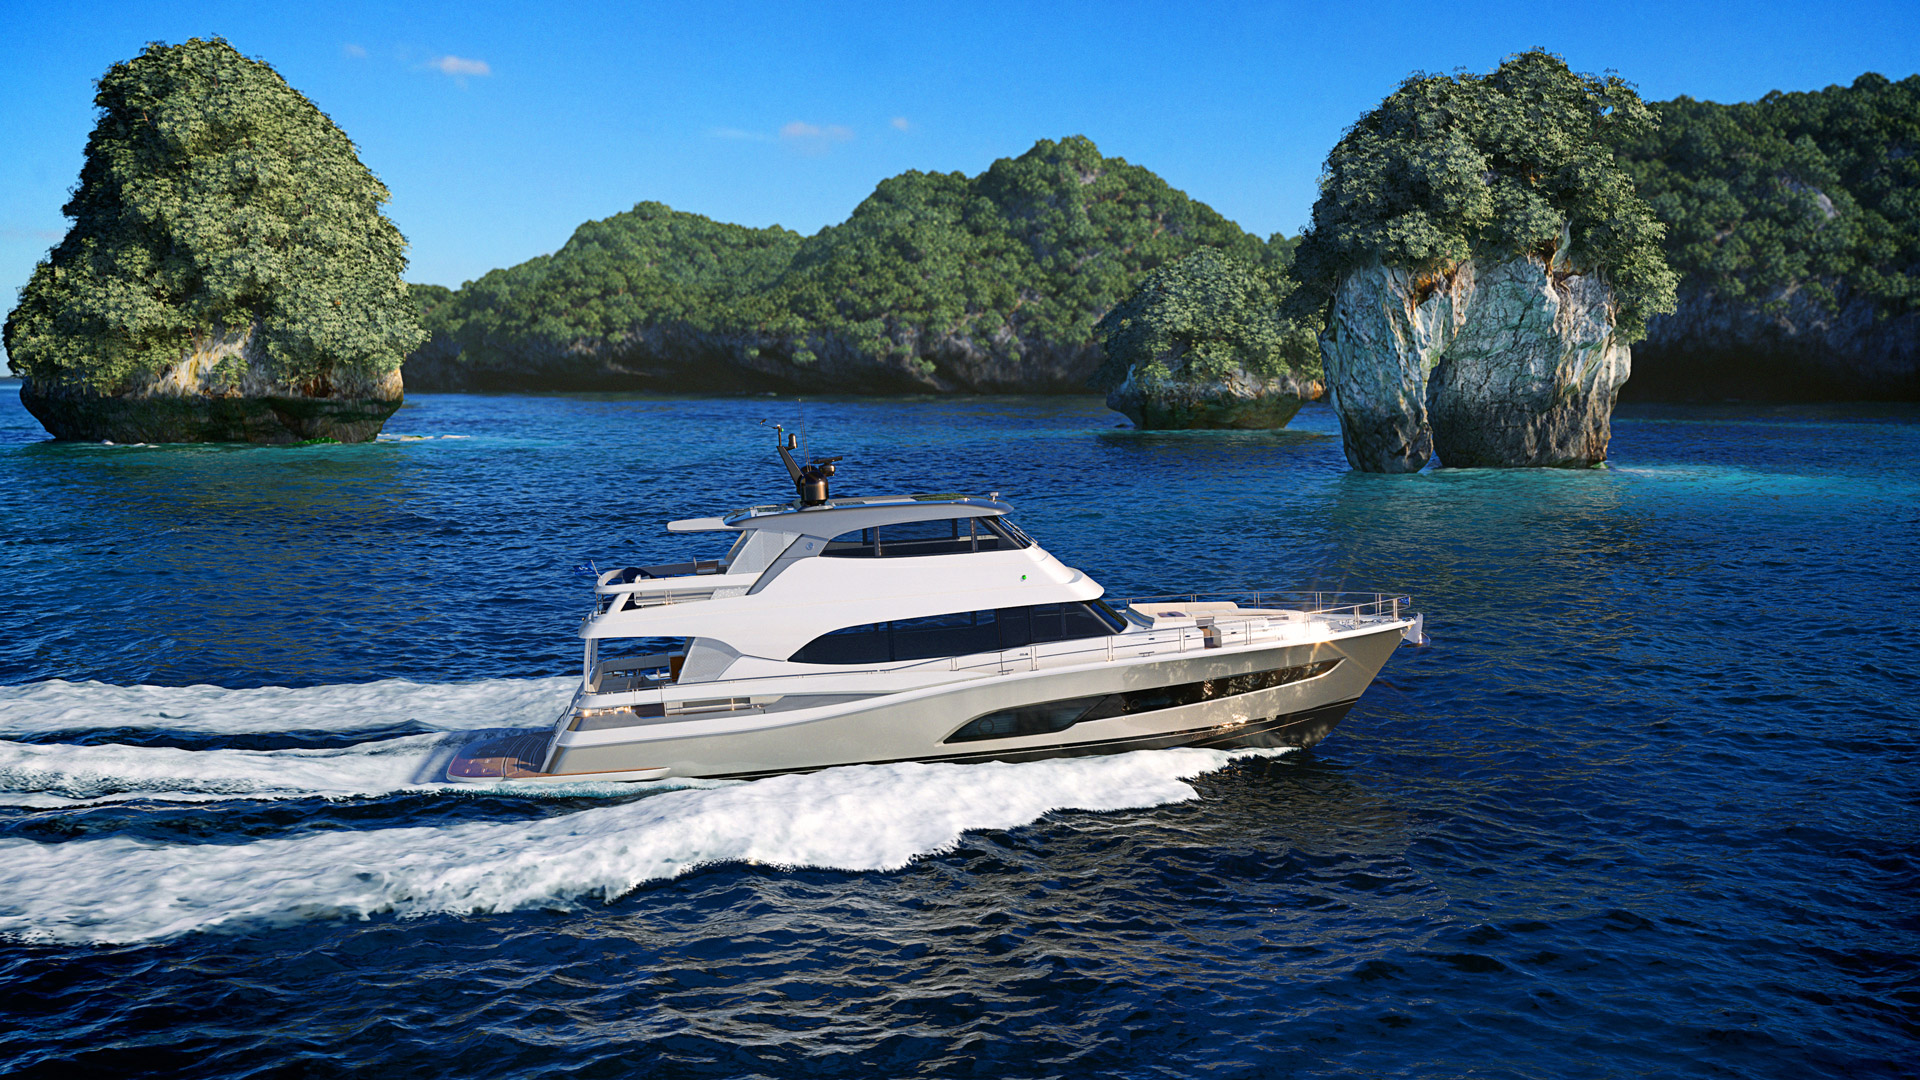 Riviera 78 motor yacht cruising with rock formation in background